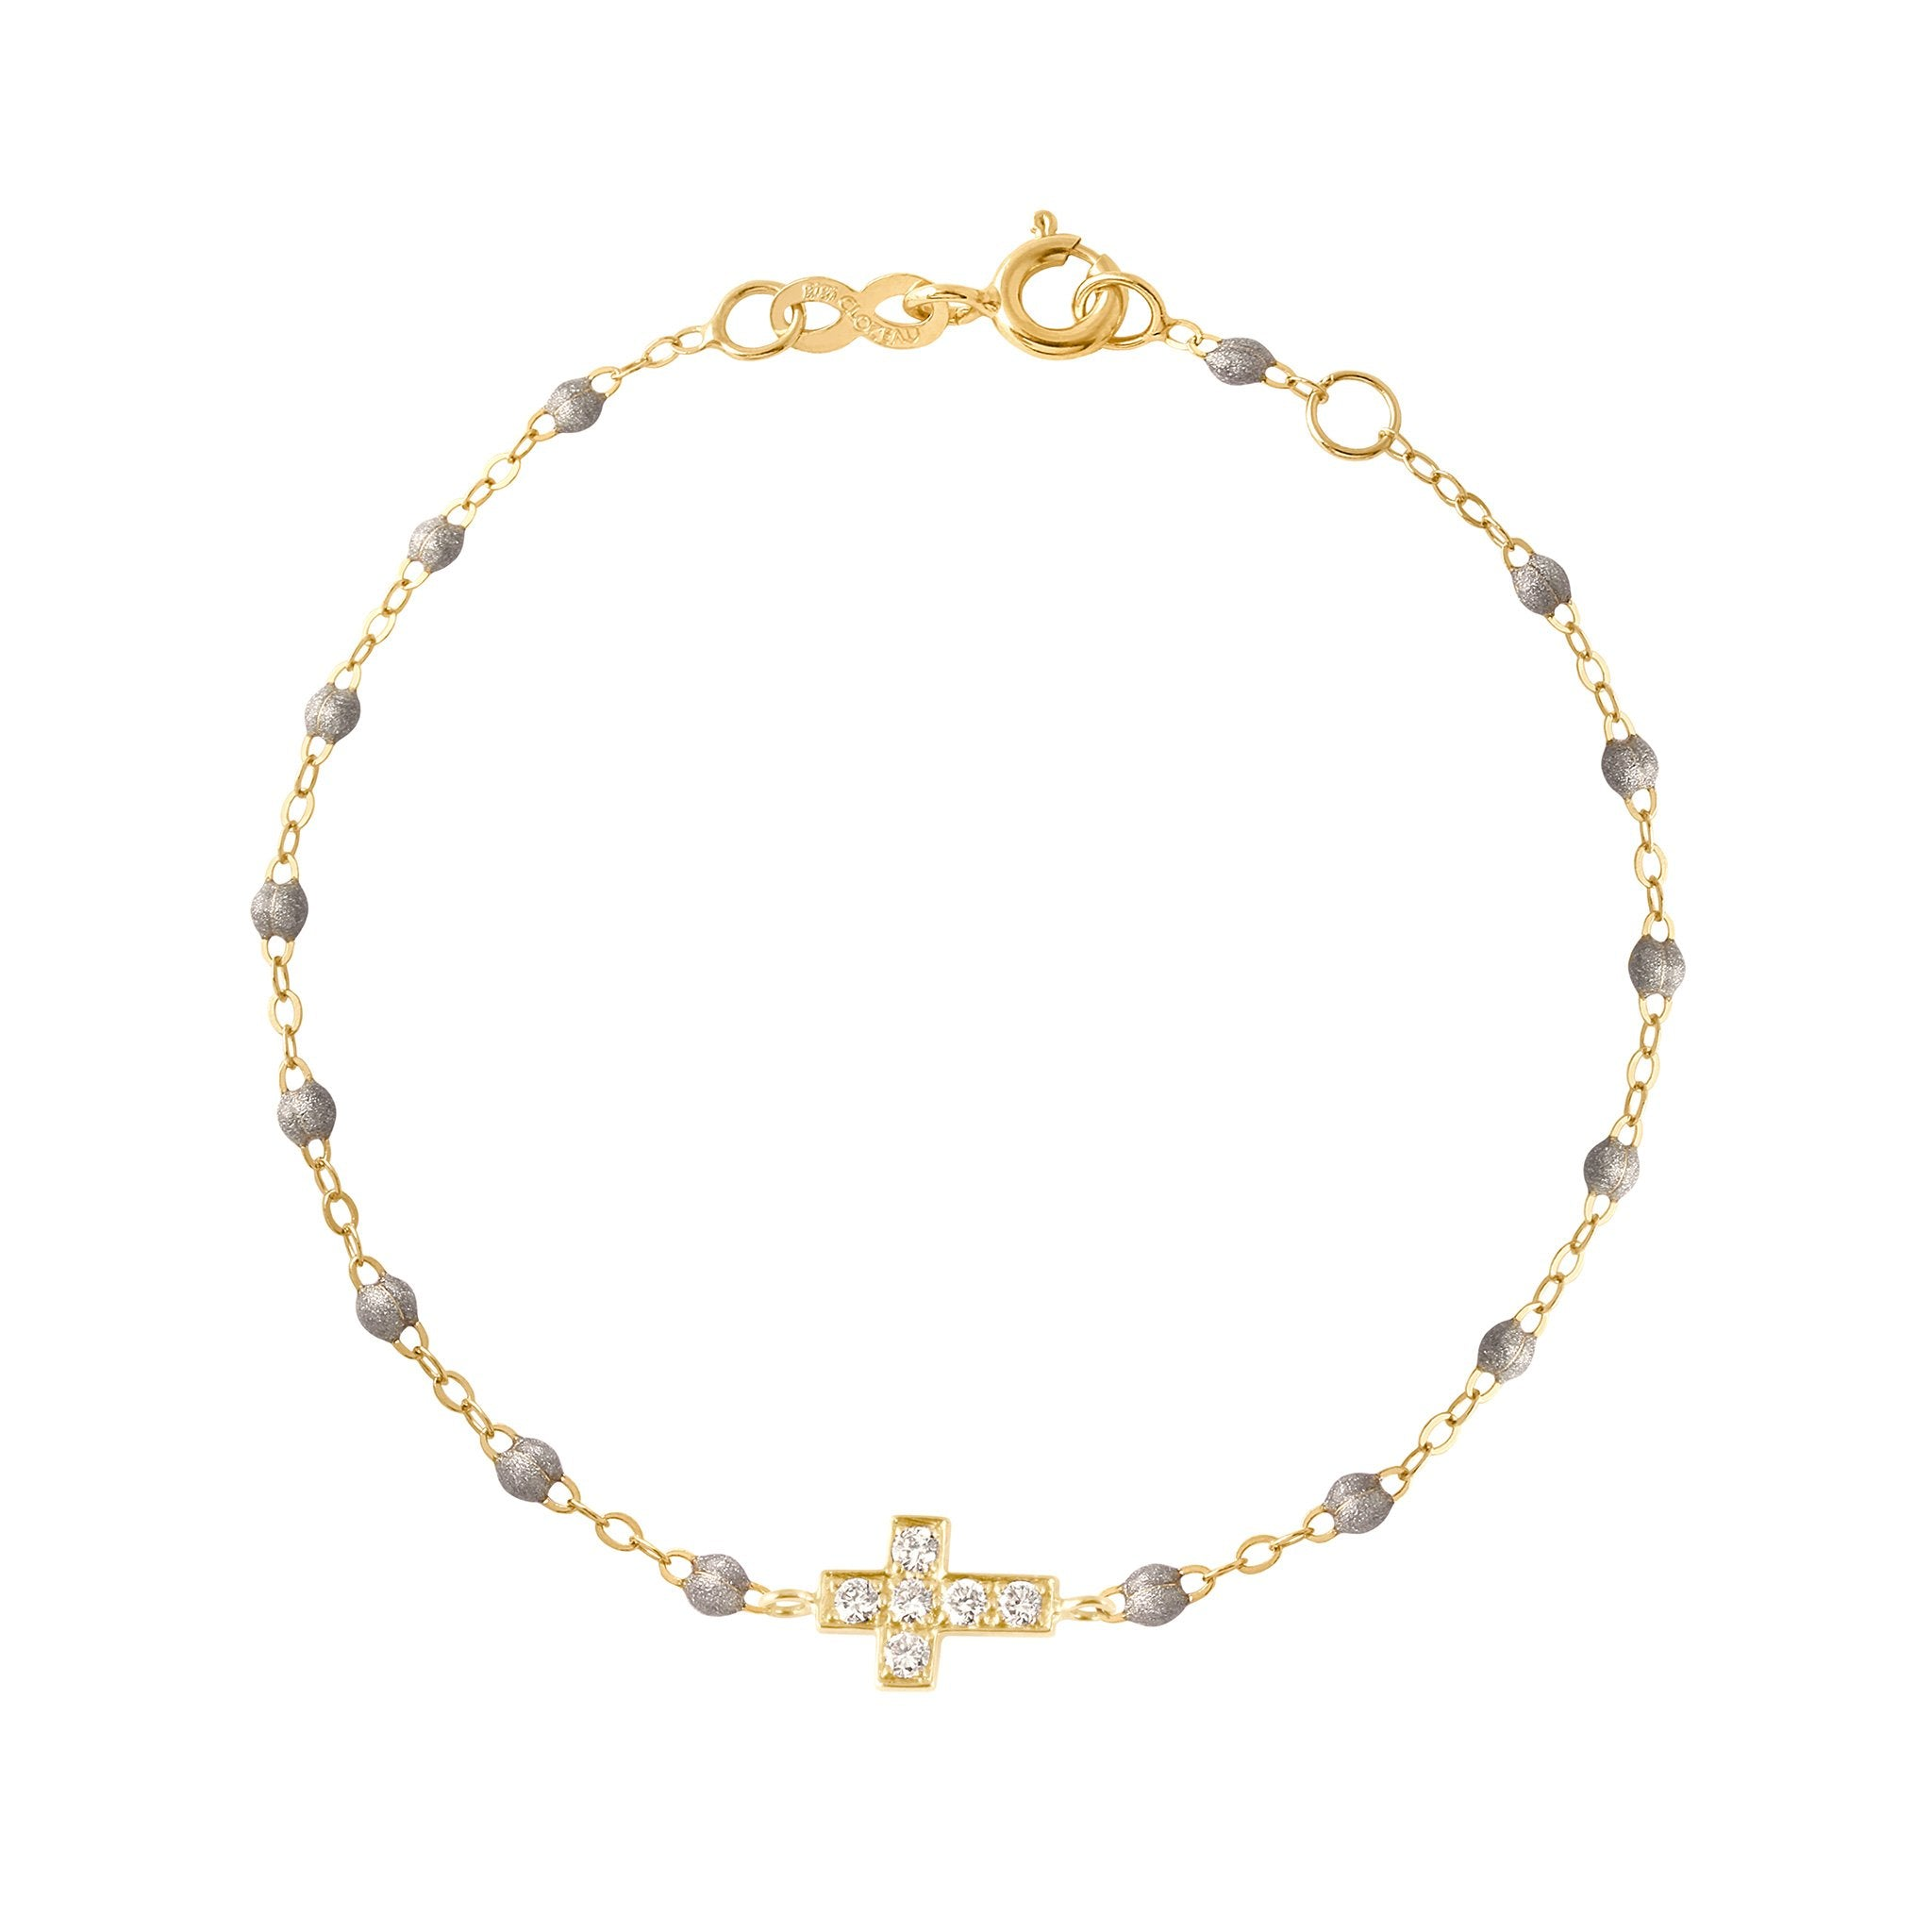 Gigi Clozeau - Cross Charm Classic Gigi Silver diamonds bracelet, Yellow Gold, 6.7""